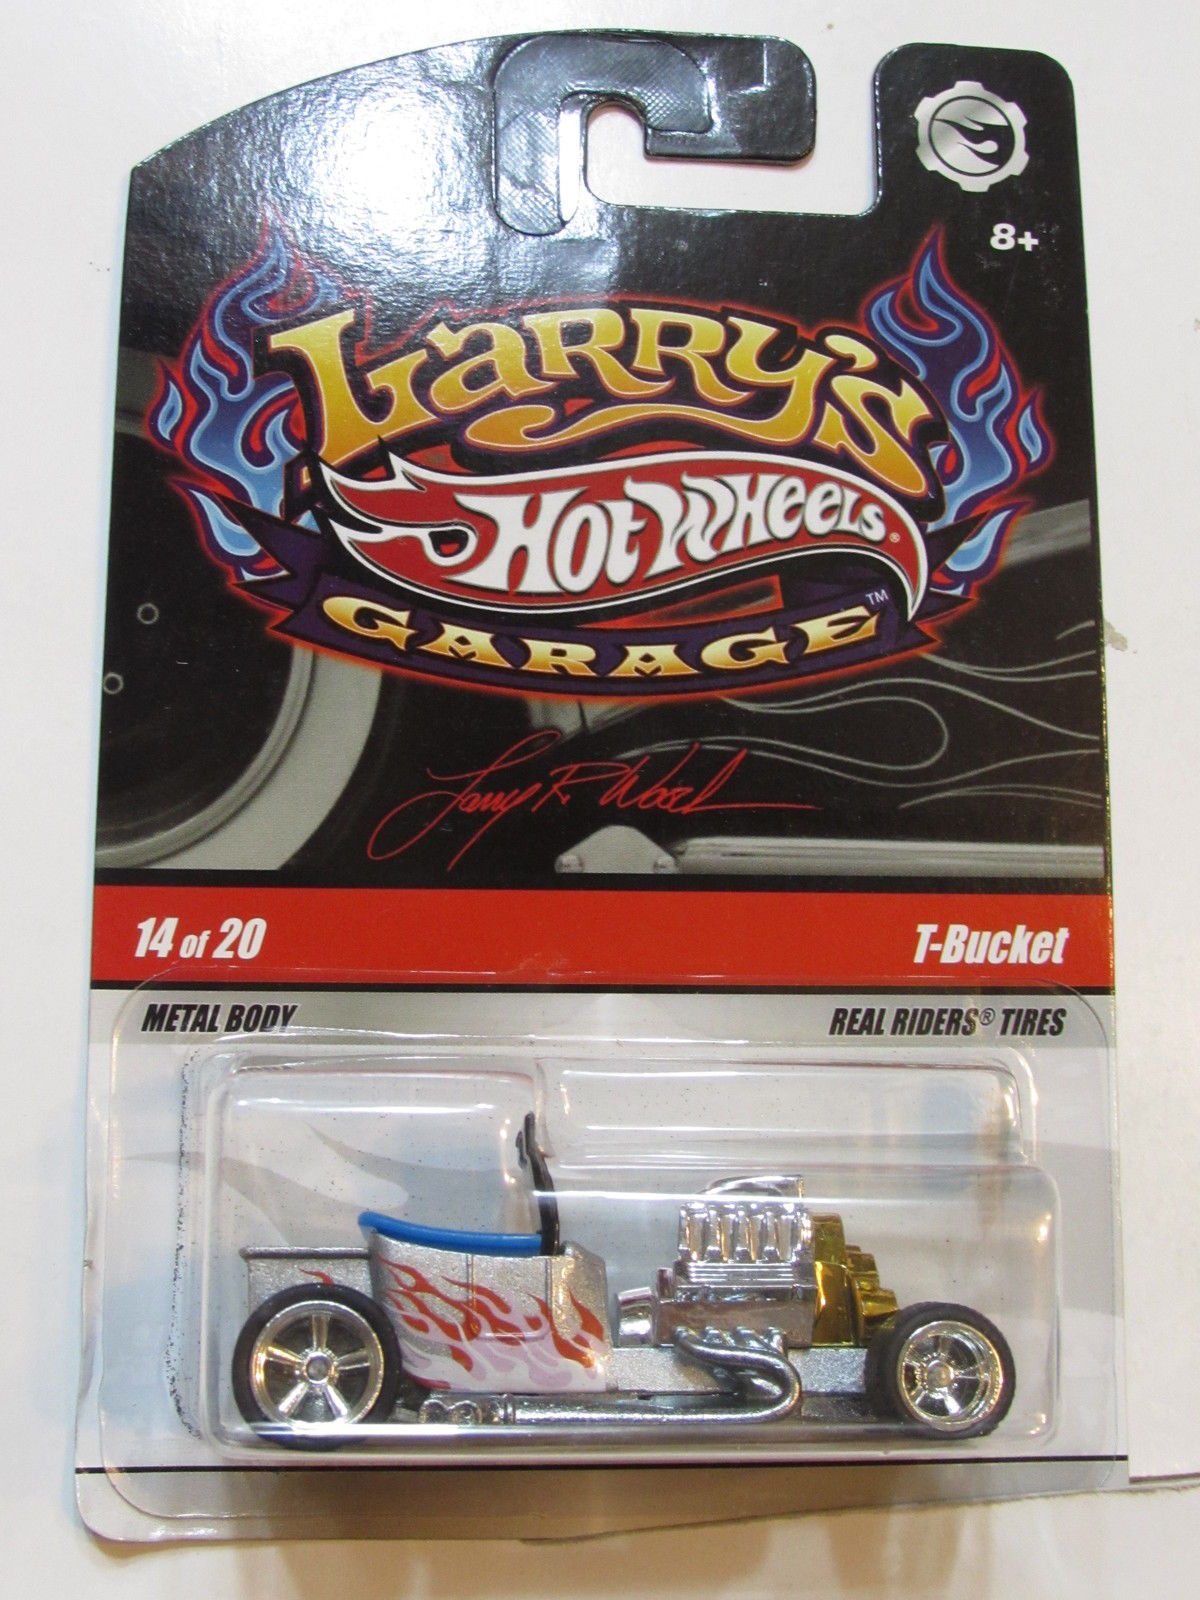 HOT WHEELS 2008 LARRY'S GARAGE #14/20 T-BUCKET CHASE